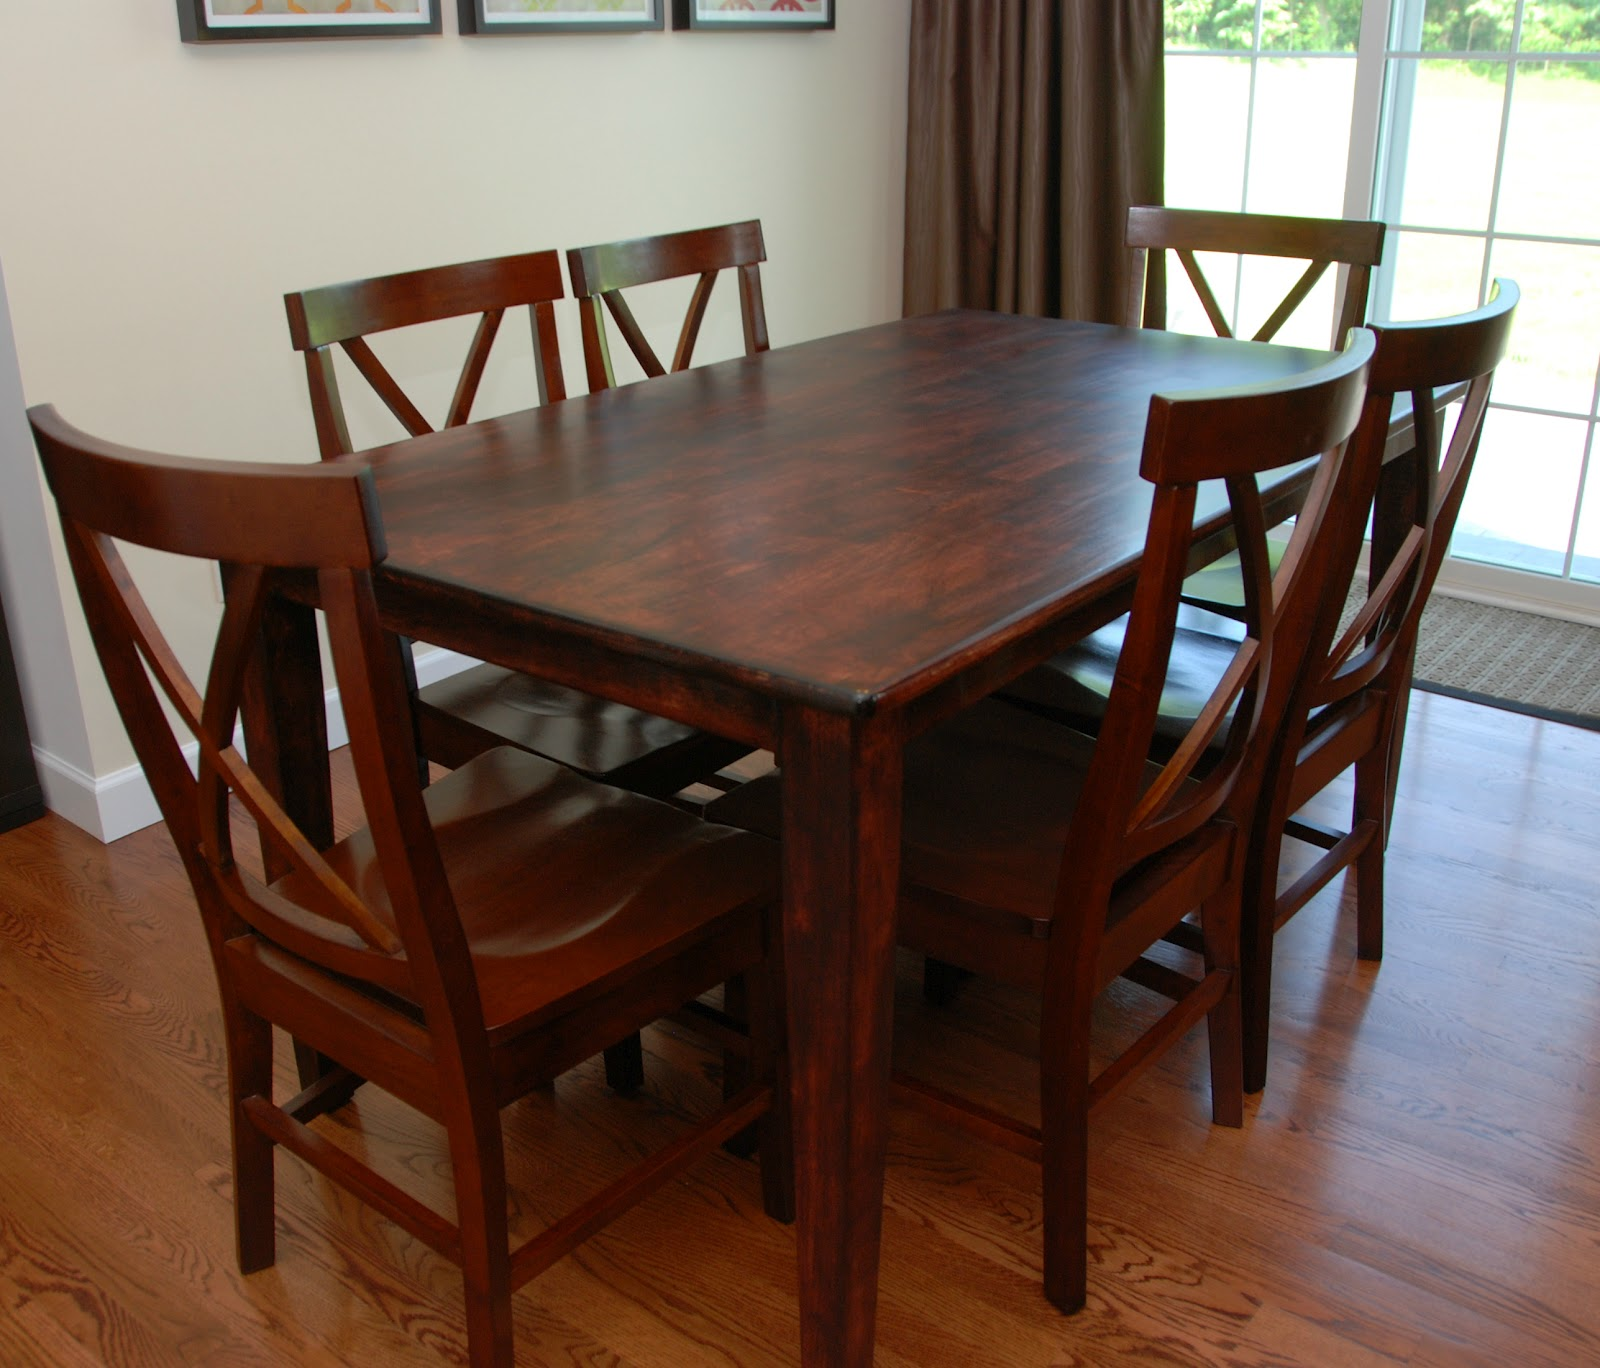 refinished kitchen table refinishing kitchen table Refinished Kitchen Table